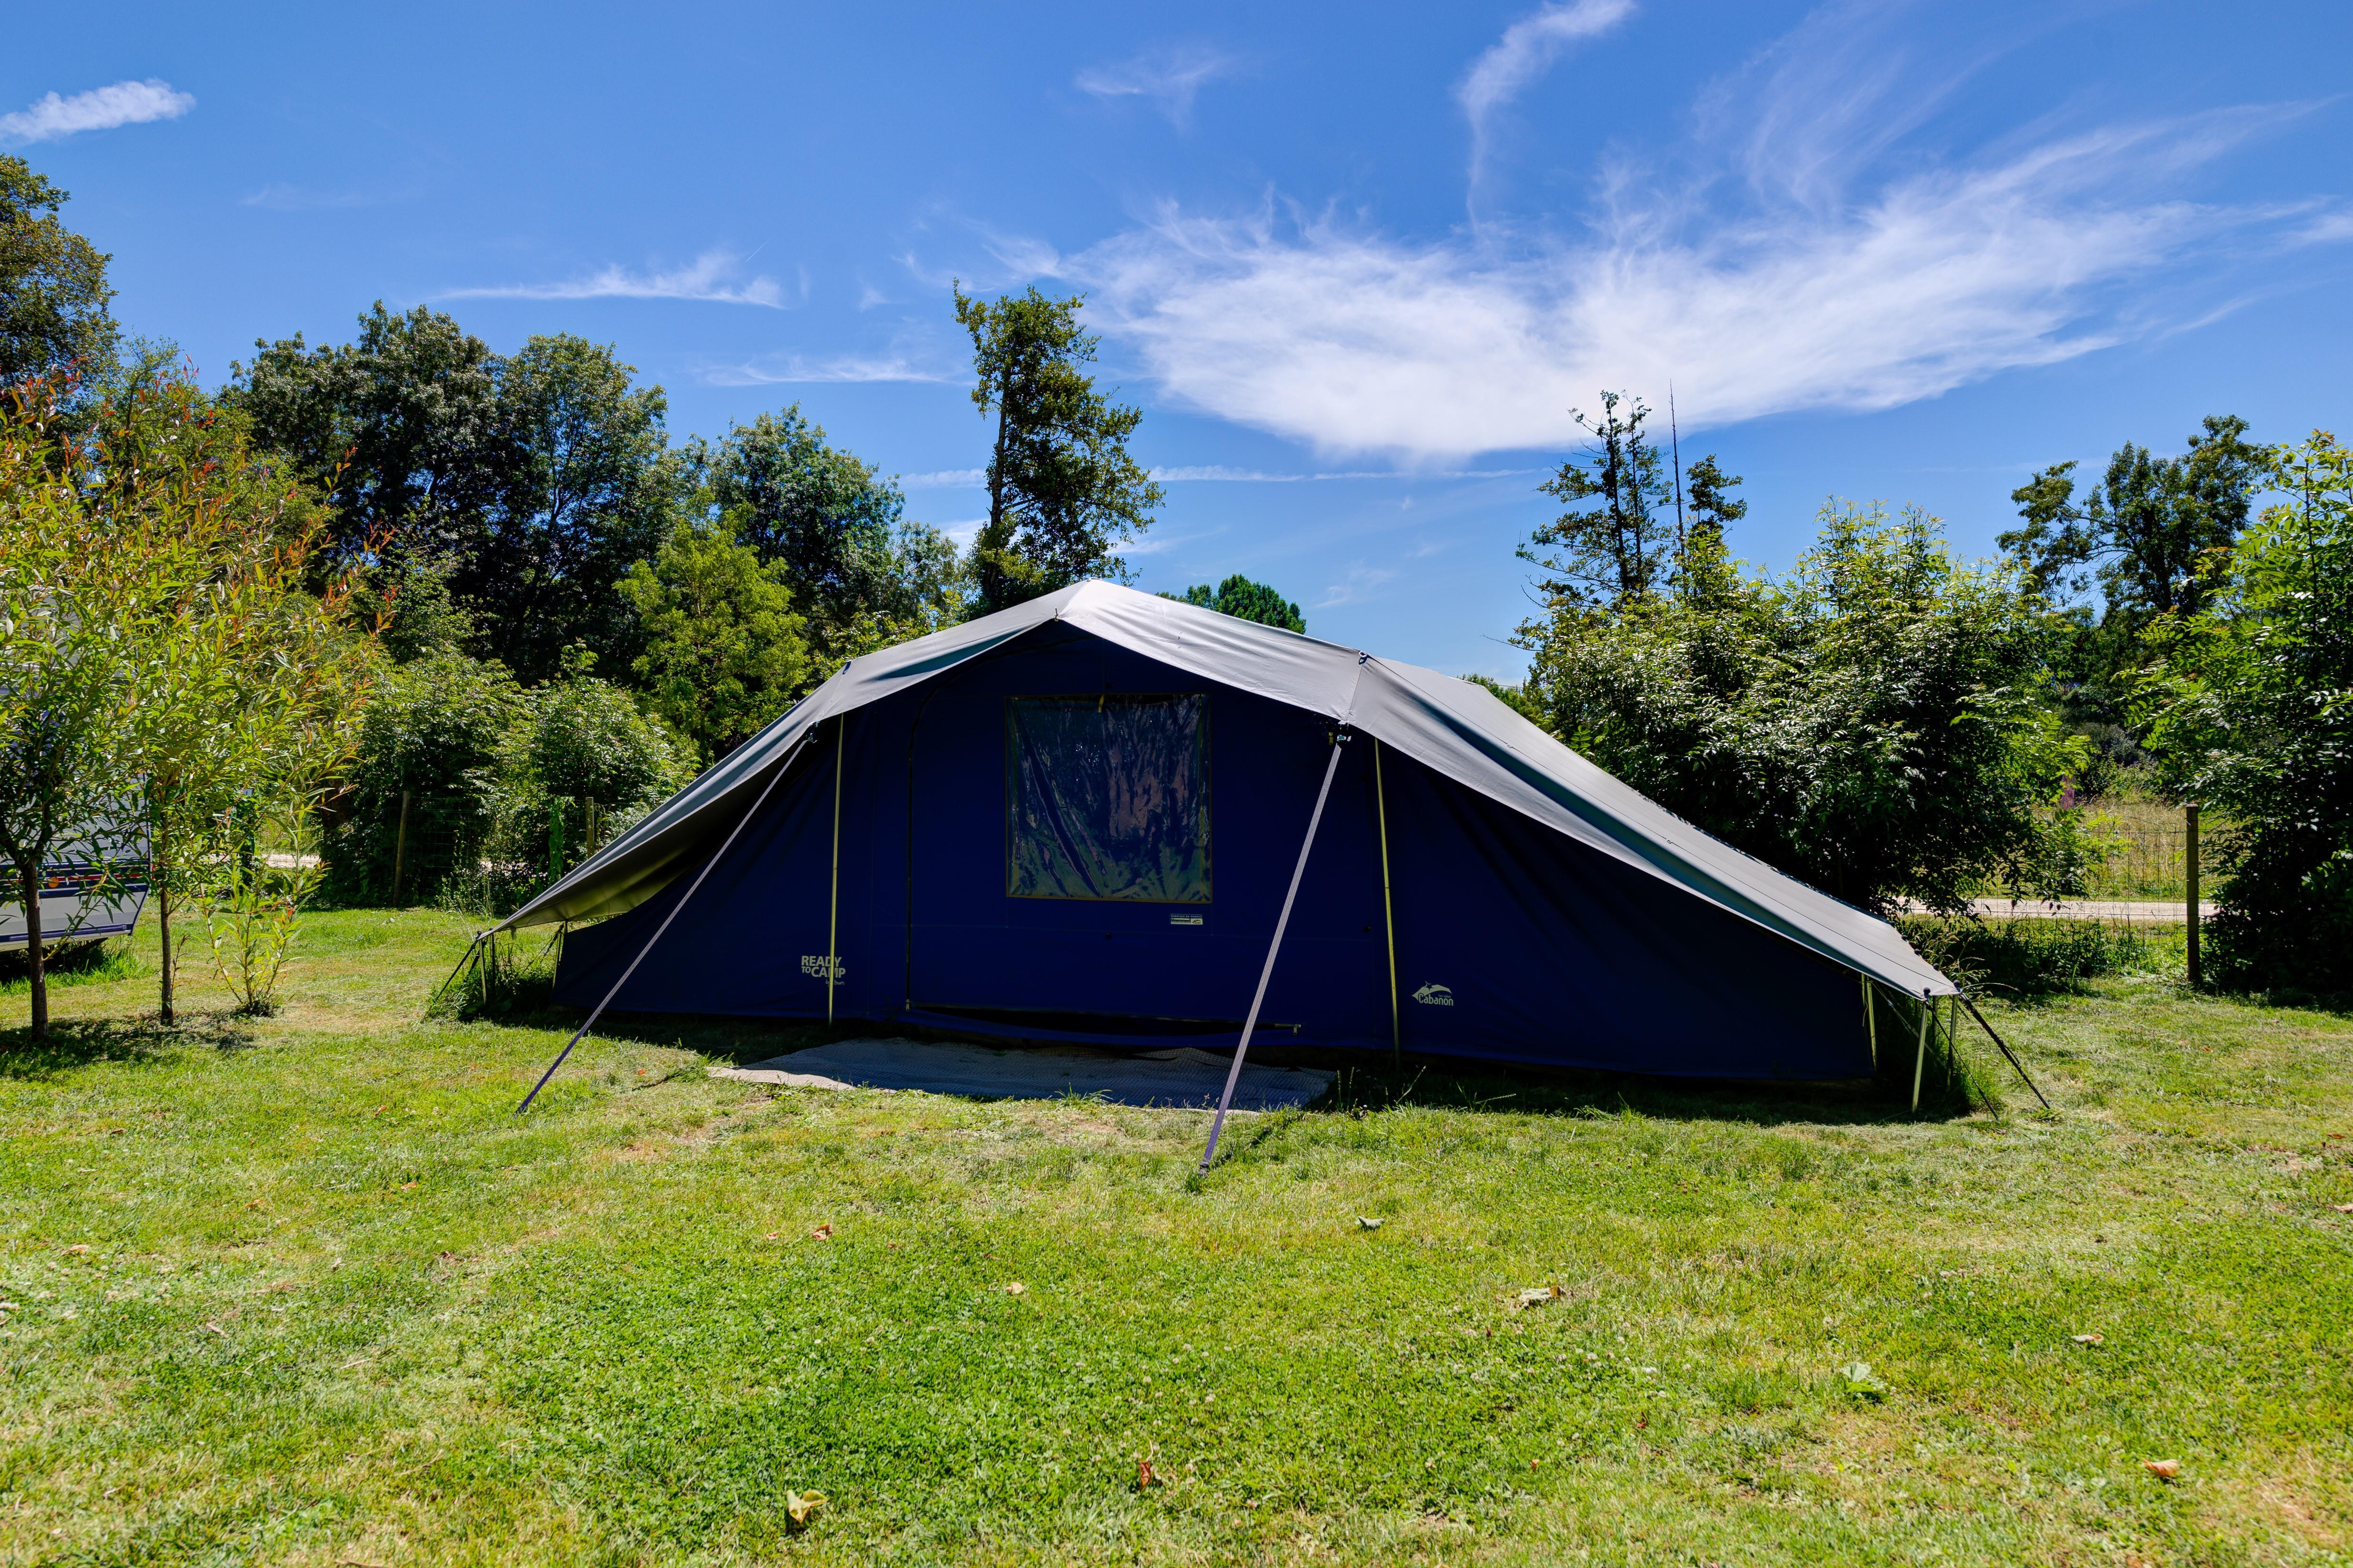 Stellplatz - READY TO CAMP Package - Flower Camping La Venise Verte